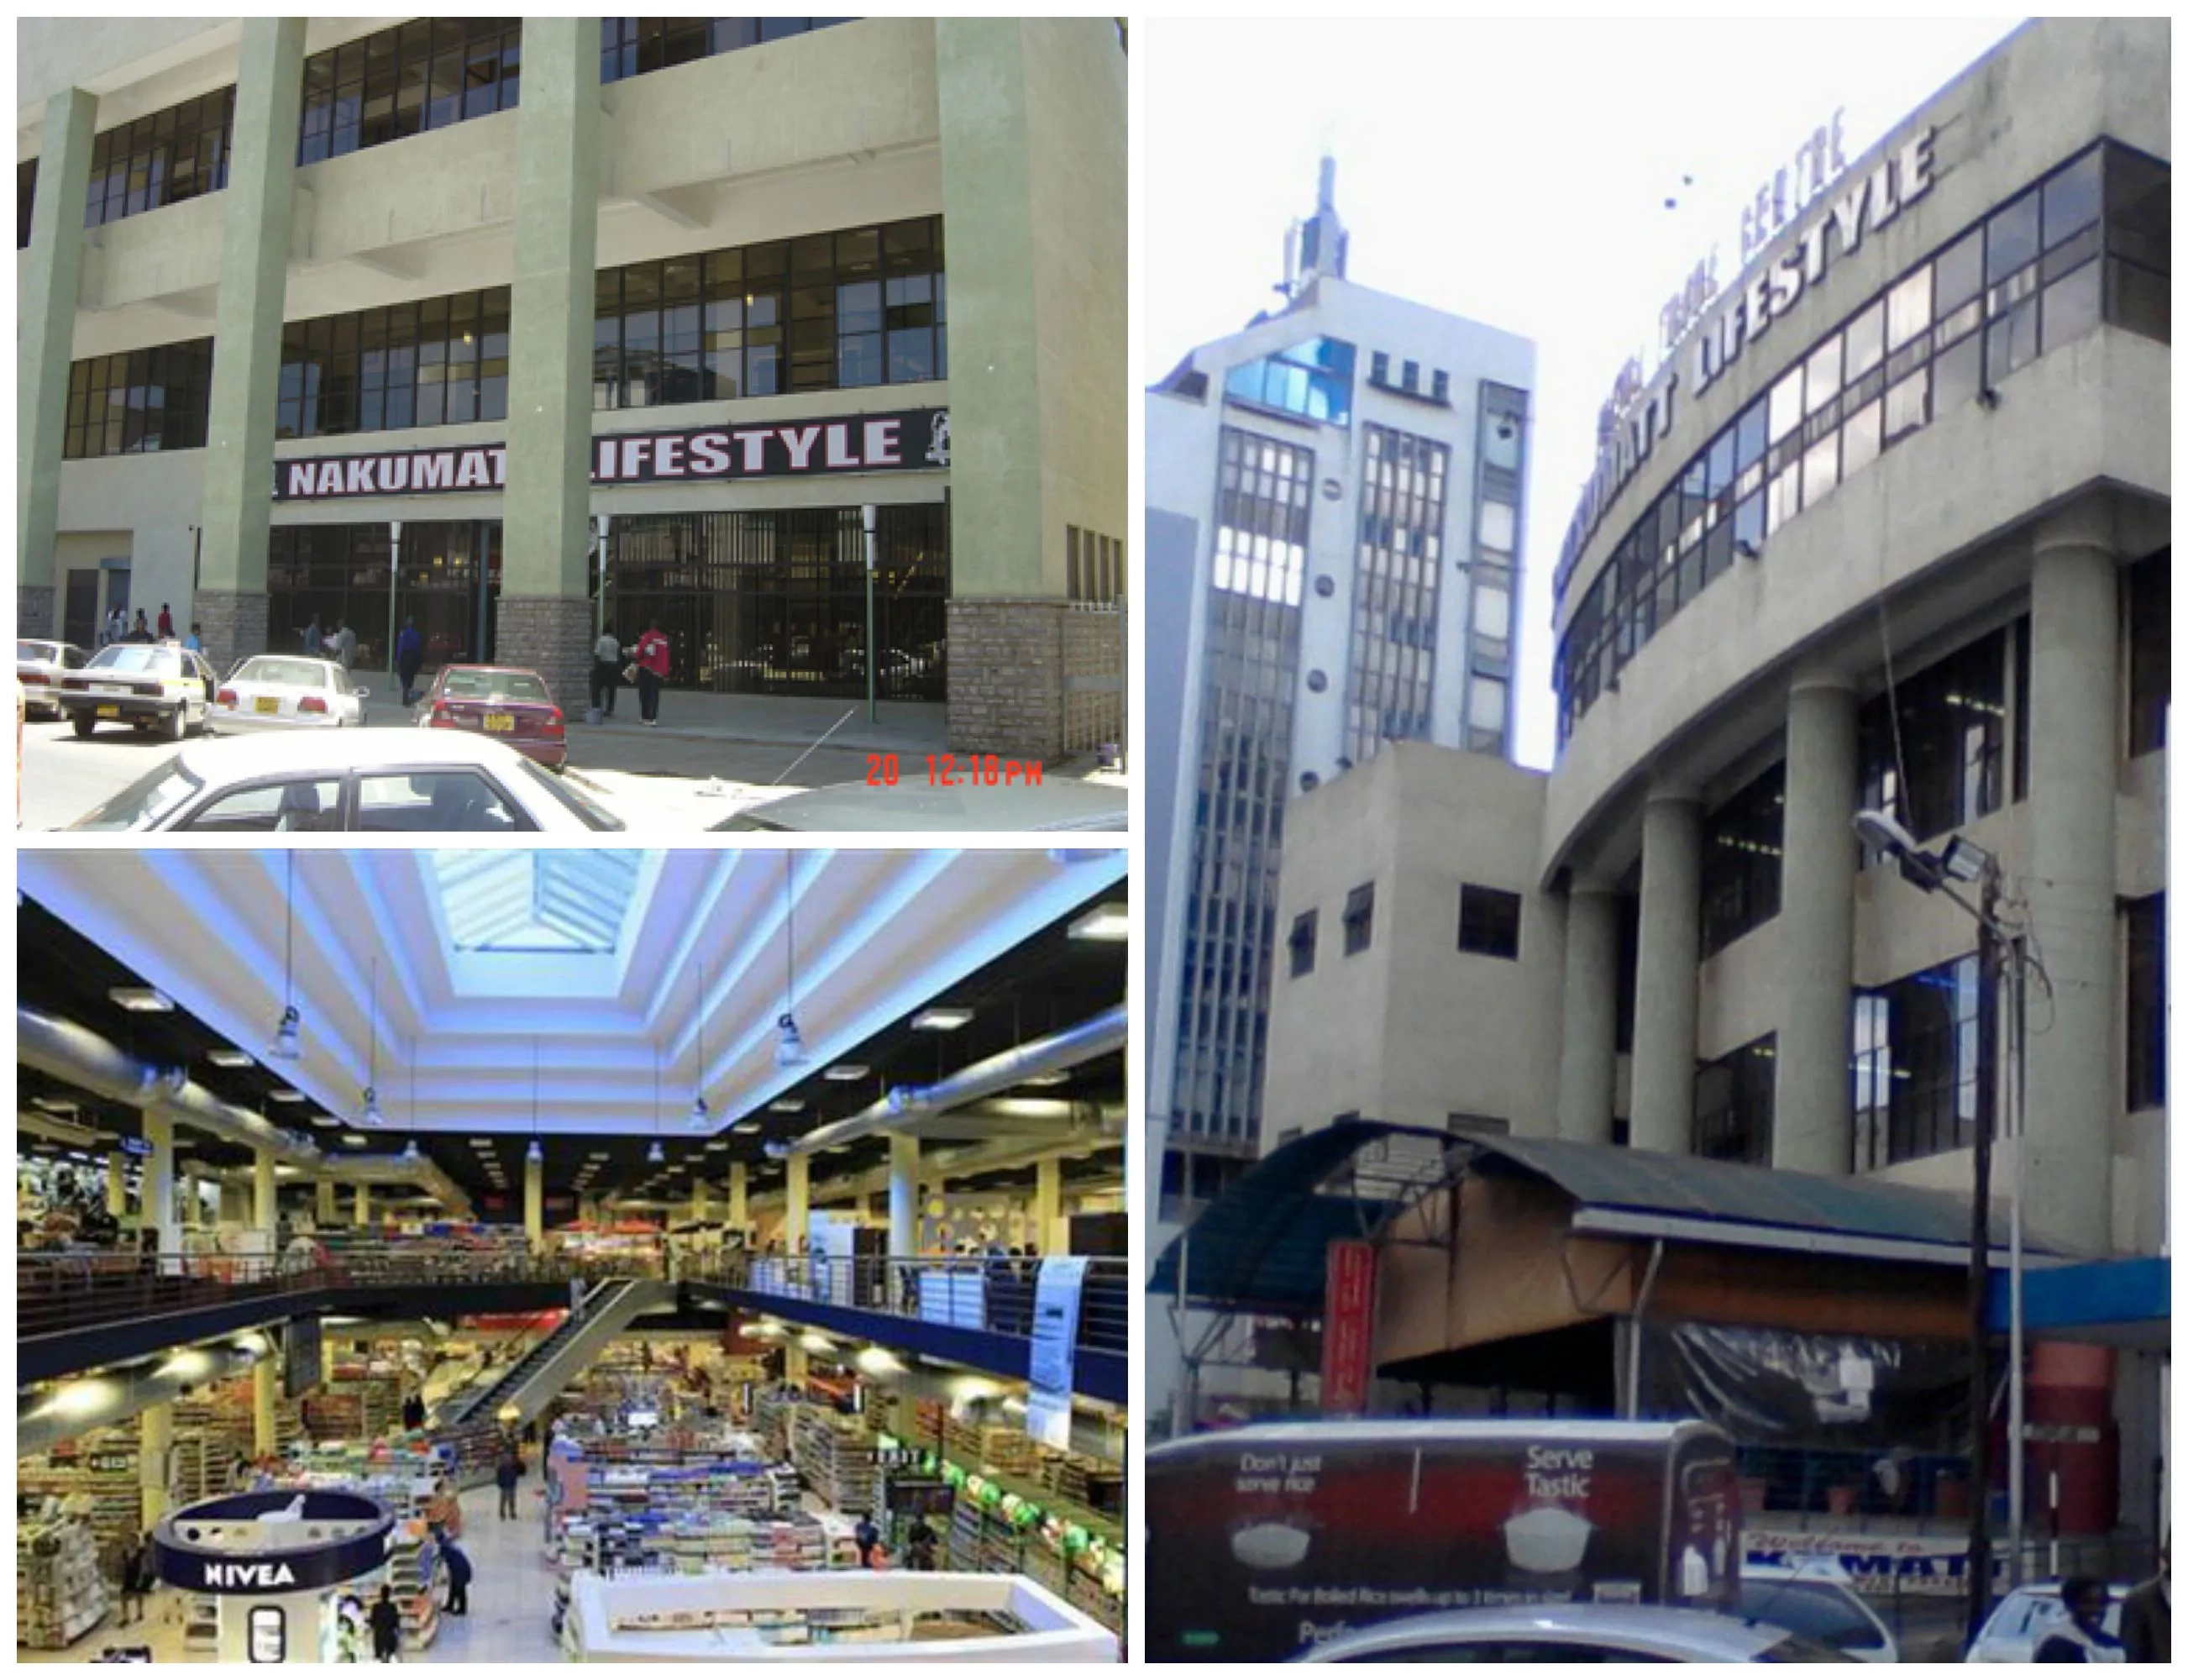 Nakumatt supermarket accused of conning consumers